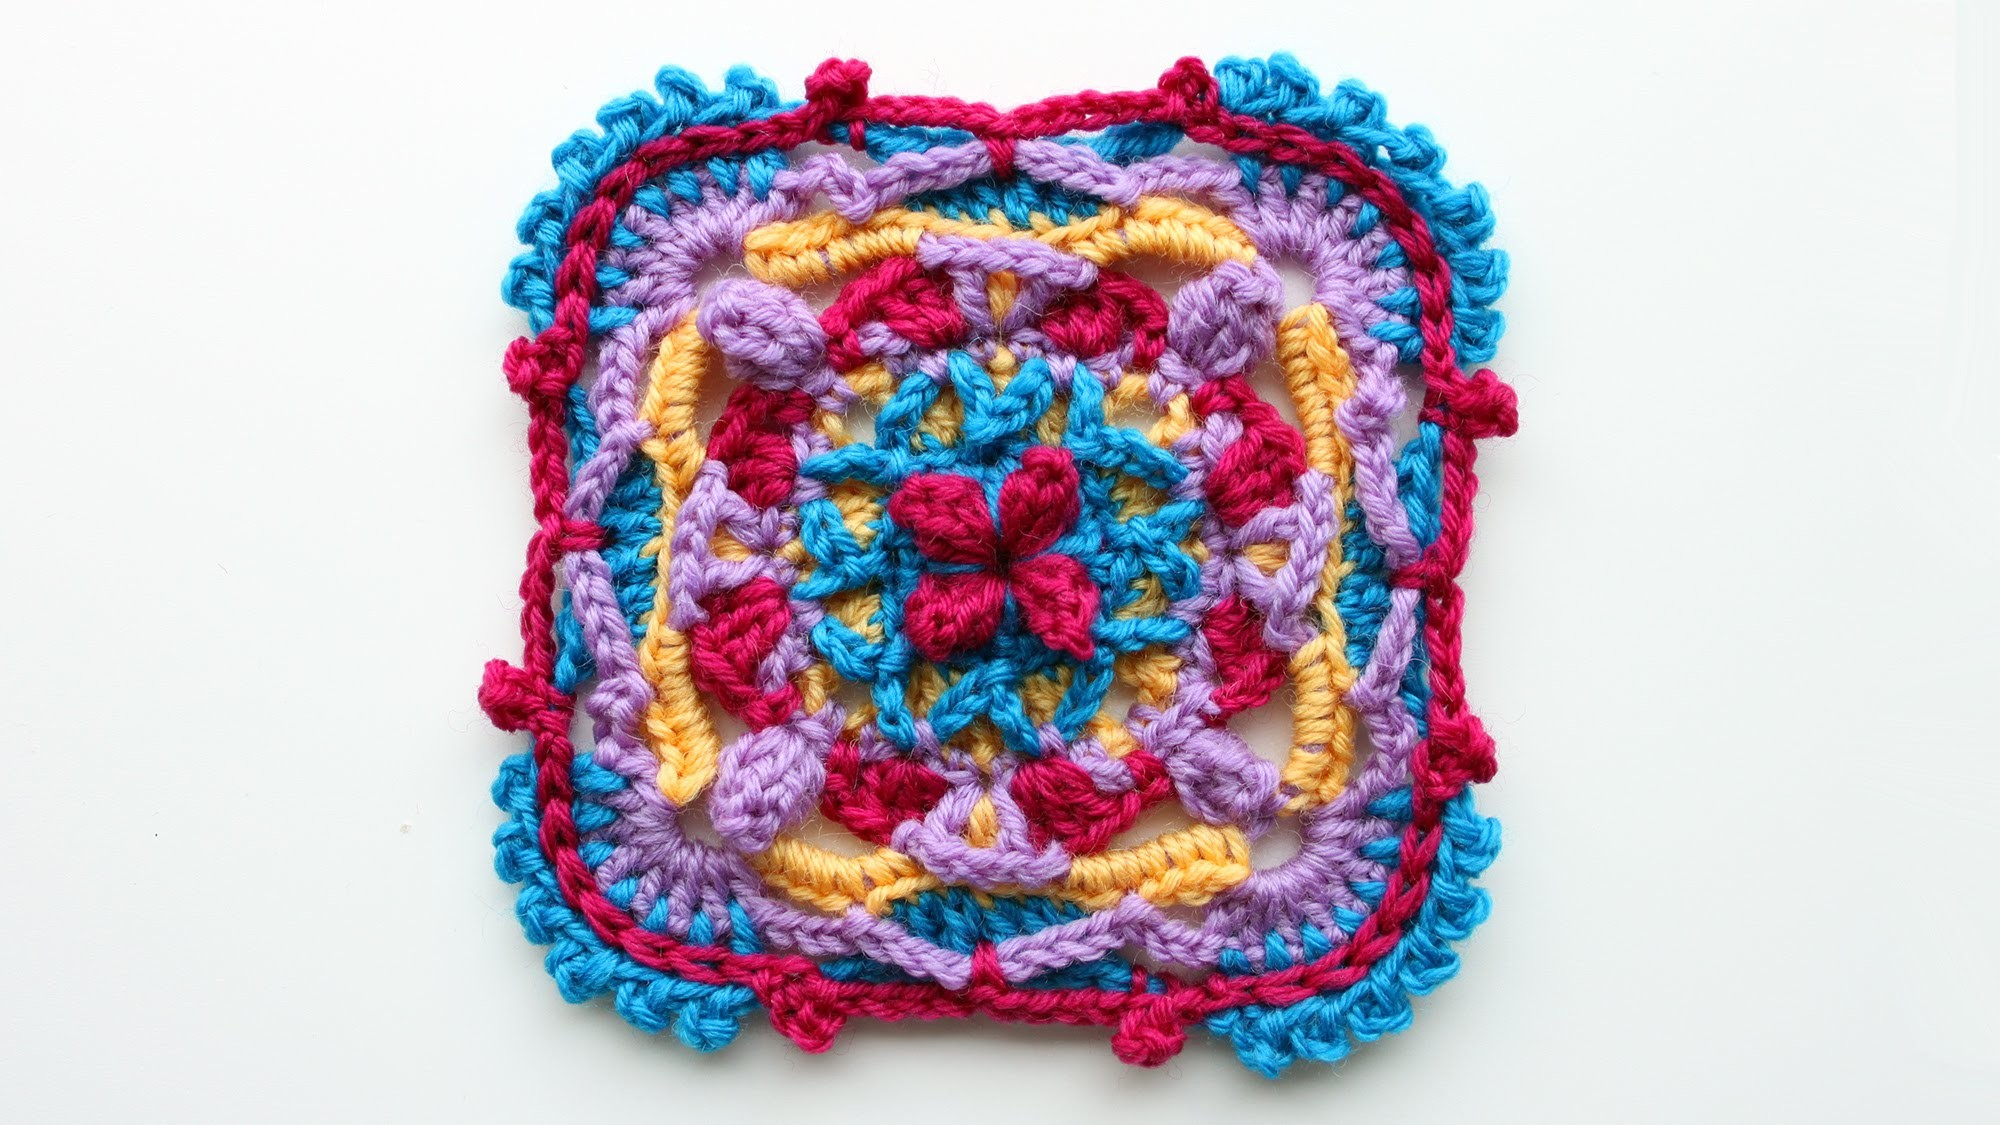 Colorful overlay crochet square tutorial, part 1 of 3